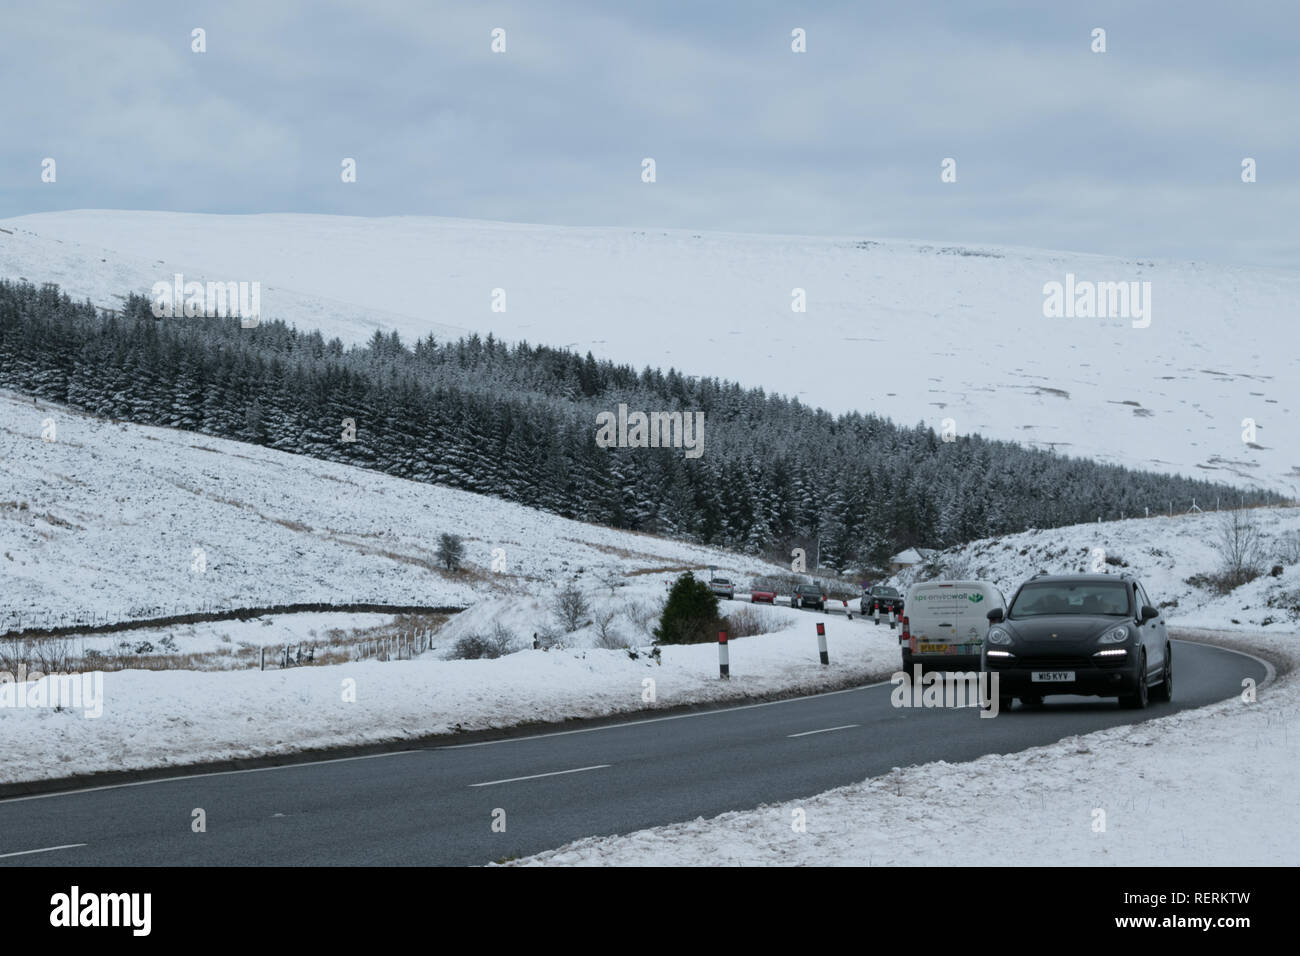 Storey Arms, Brecon Beacons, South Wales, UK.  23 January 2019.  UK weather: After heavy snow overnight, the Brecon Beacons are covered today, traffic coping well on the A470.  Credit: Andrew Bartlett/Alamy Live News. - Stock Image